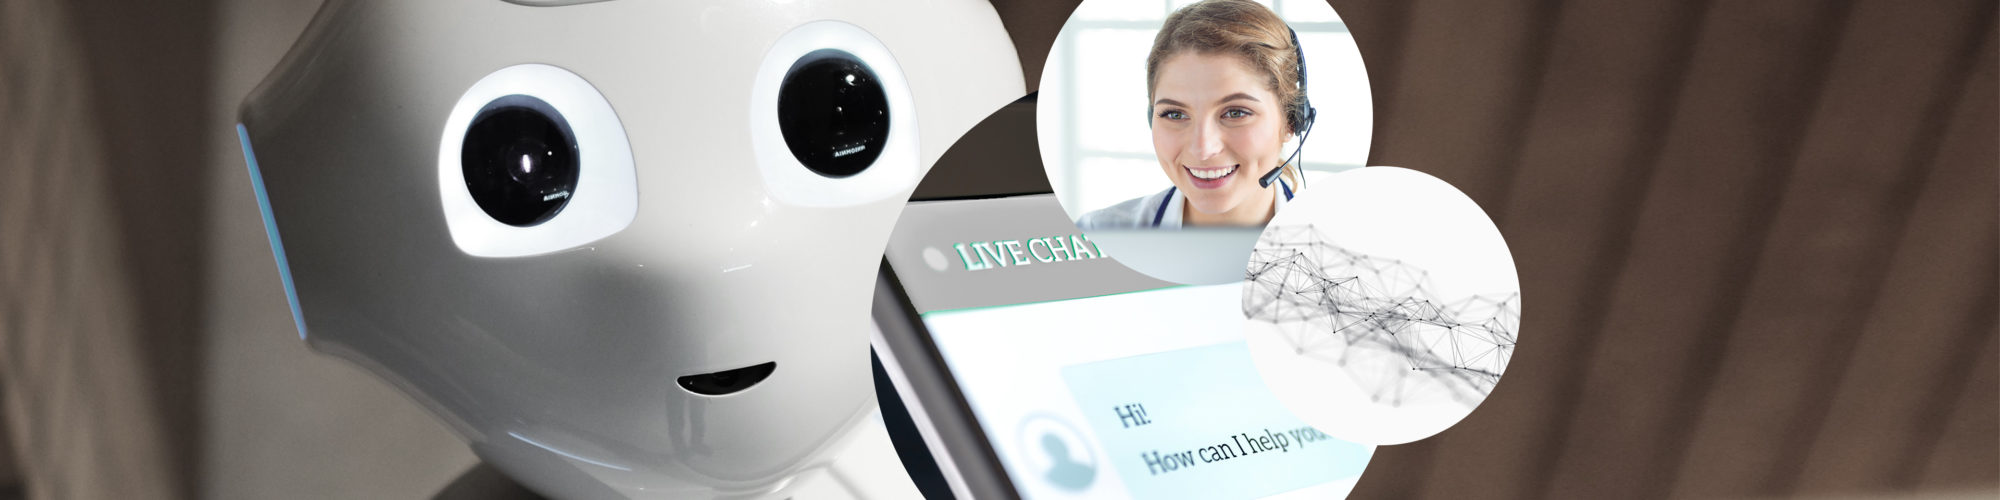 Picture of a woman with a headset, next to it a picture of a network and behind it pictures of a robot and a chat process with a bot, valantic chatbots Conversational AI